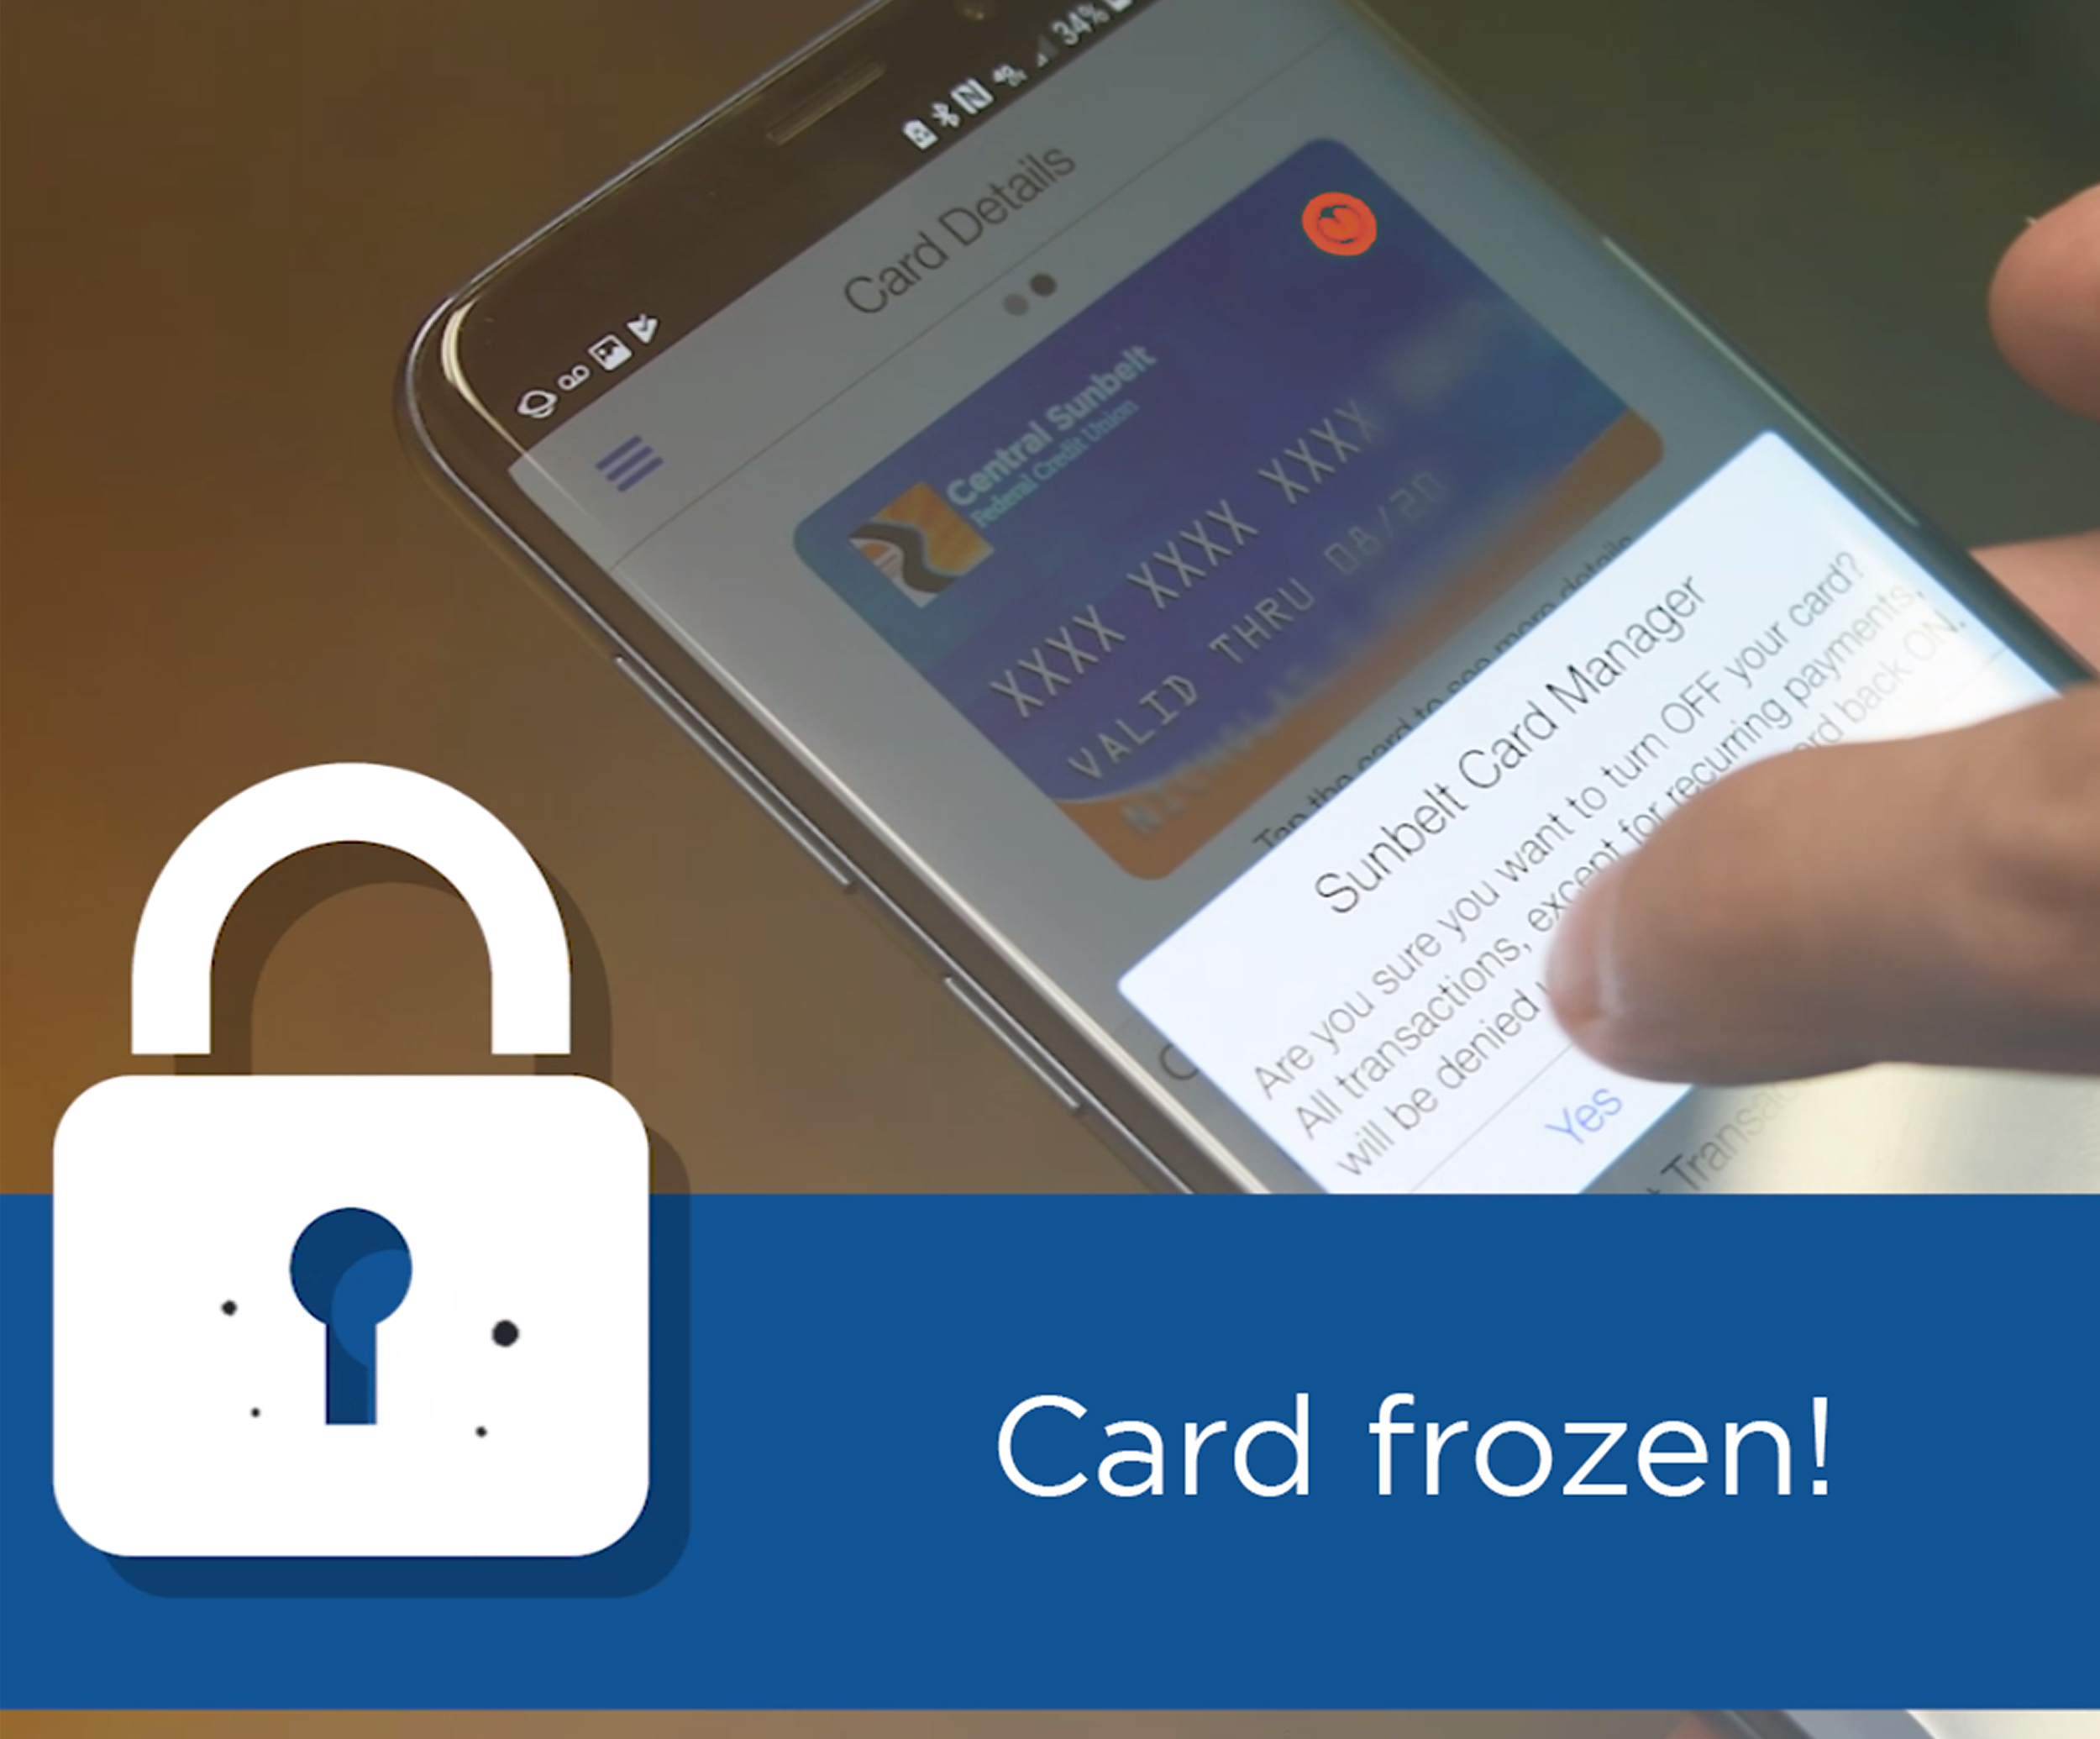 freeze and unfreeze your card with Sunbelt Card Manager and Sunbelt Central, Central Sunbelt FCU